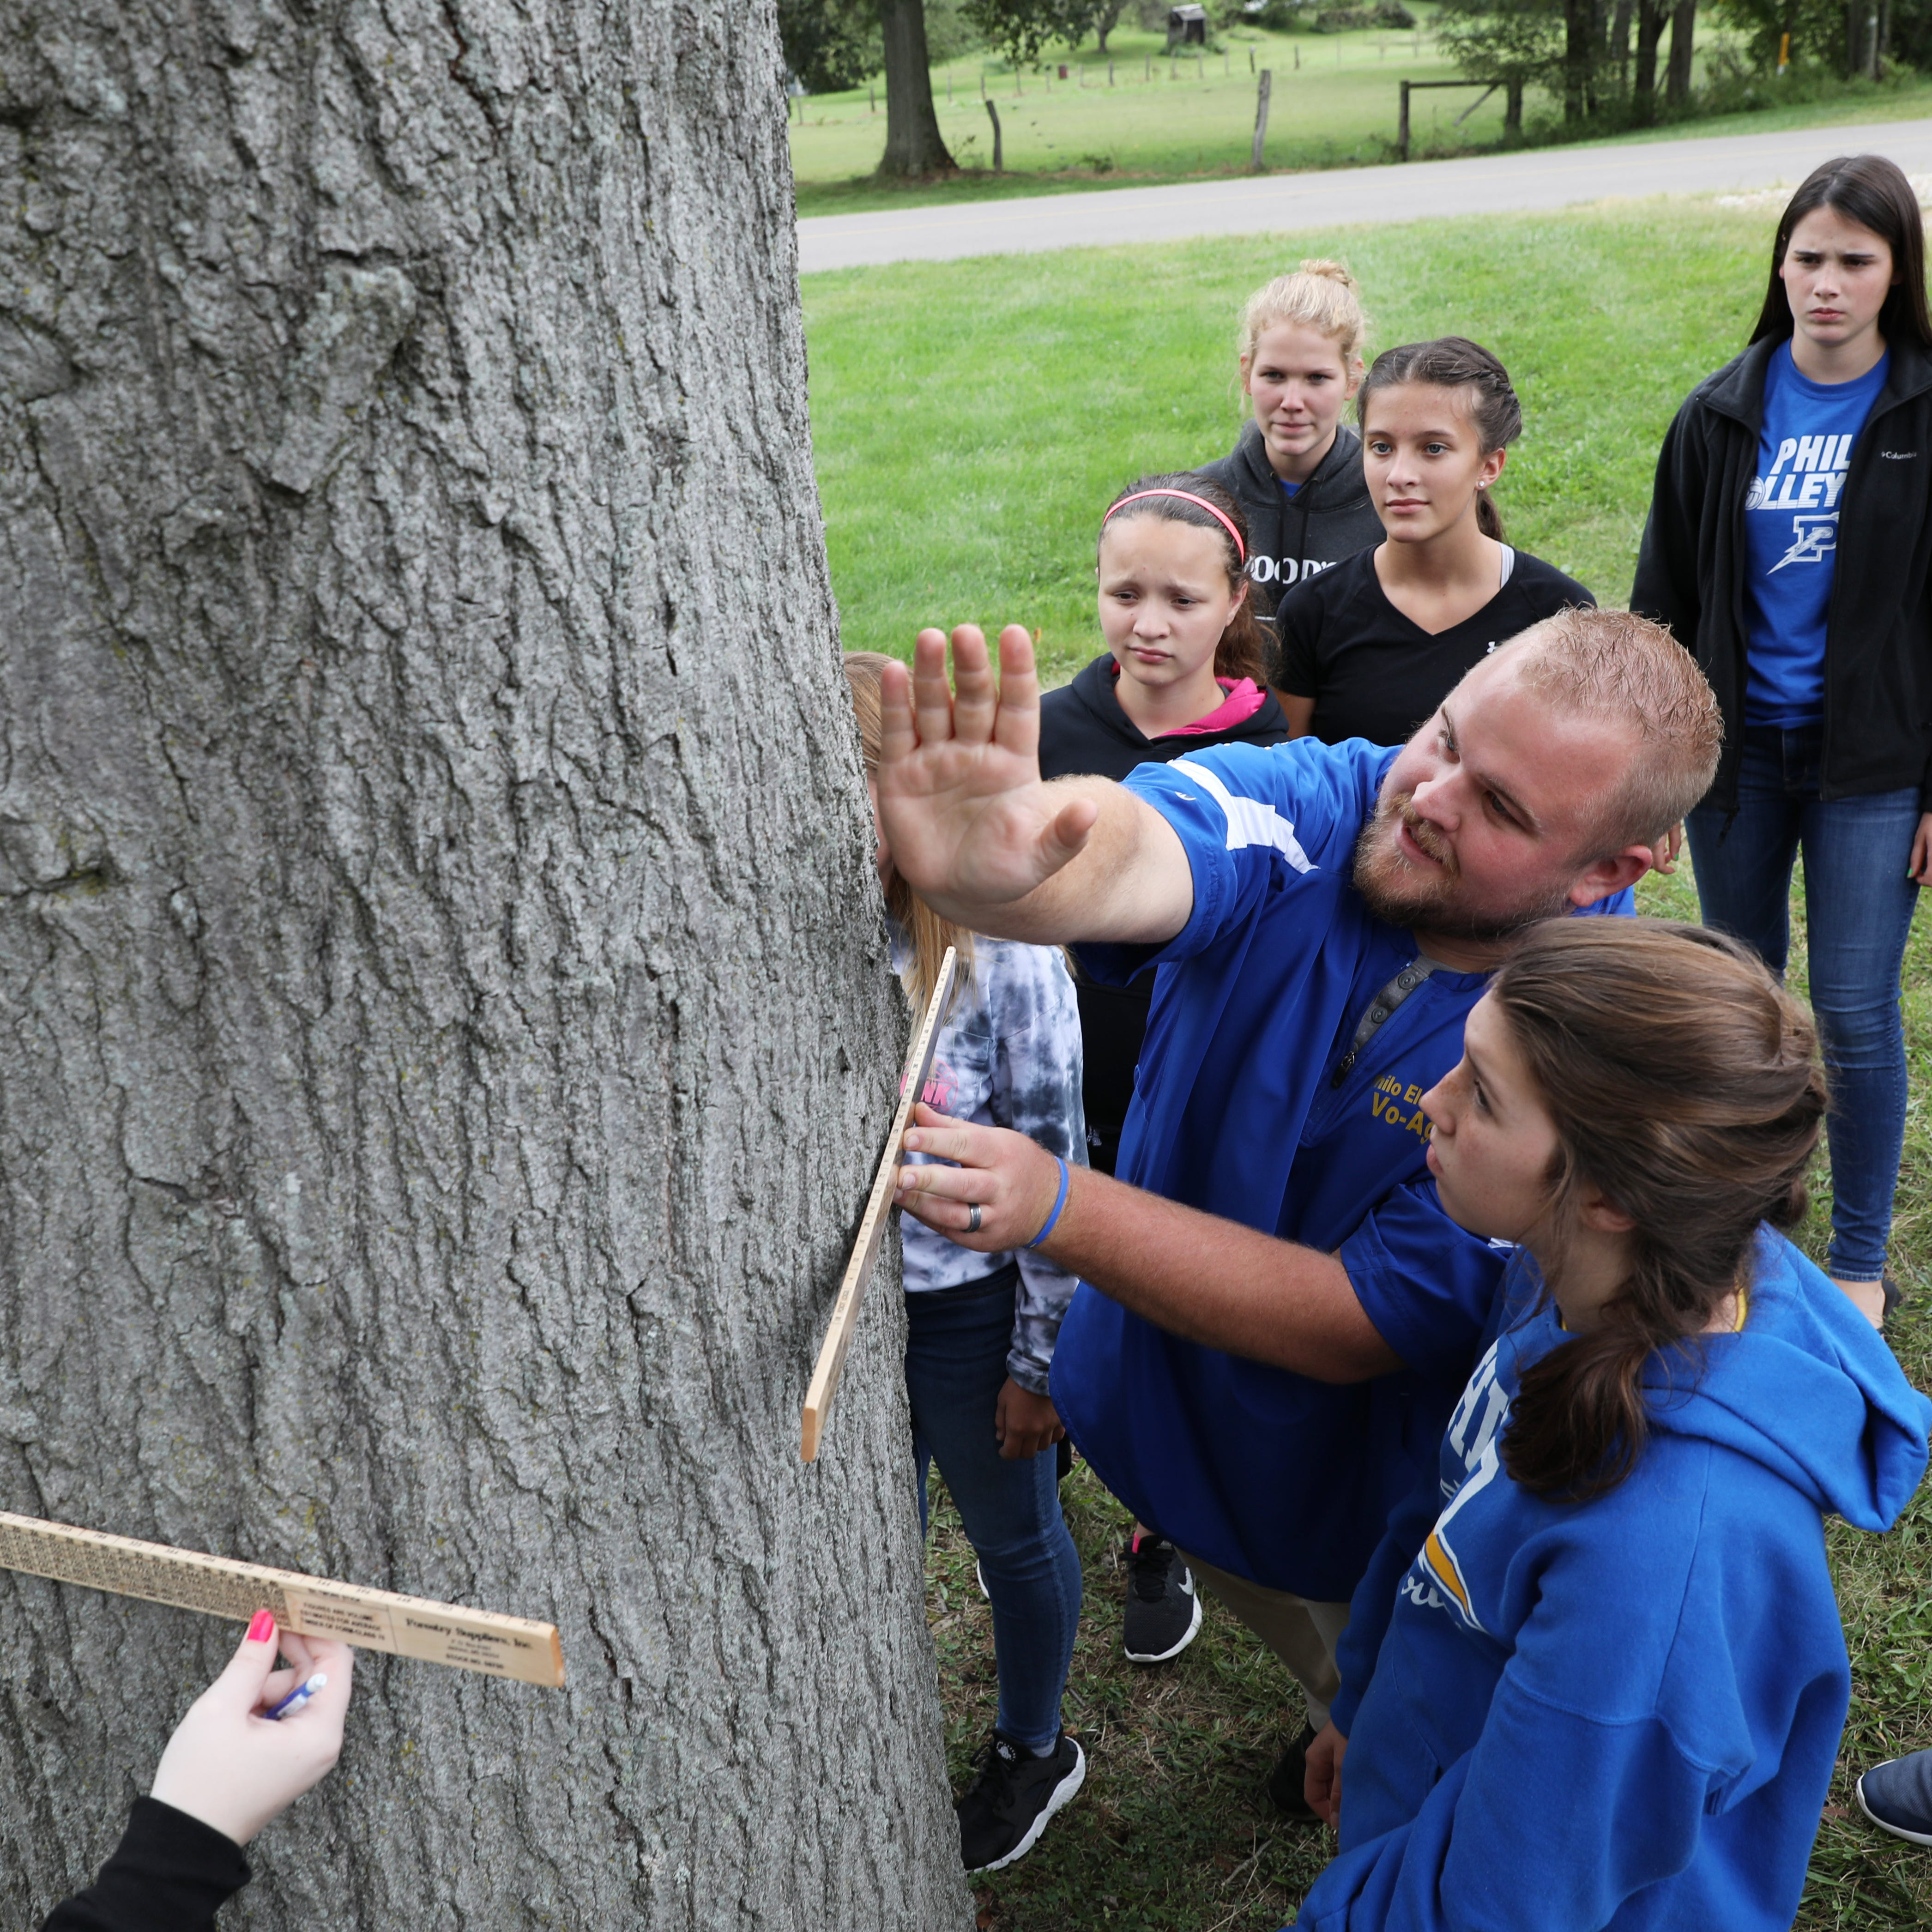 Philo High School vocational ag teacher Clay Winland shows a group of students how to use a board-foot measuring stick while measuring a tree near the school.